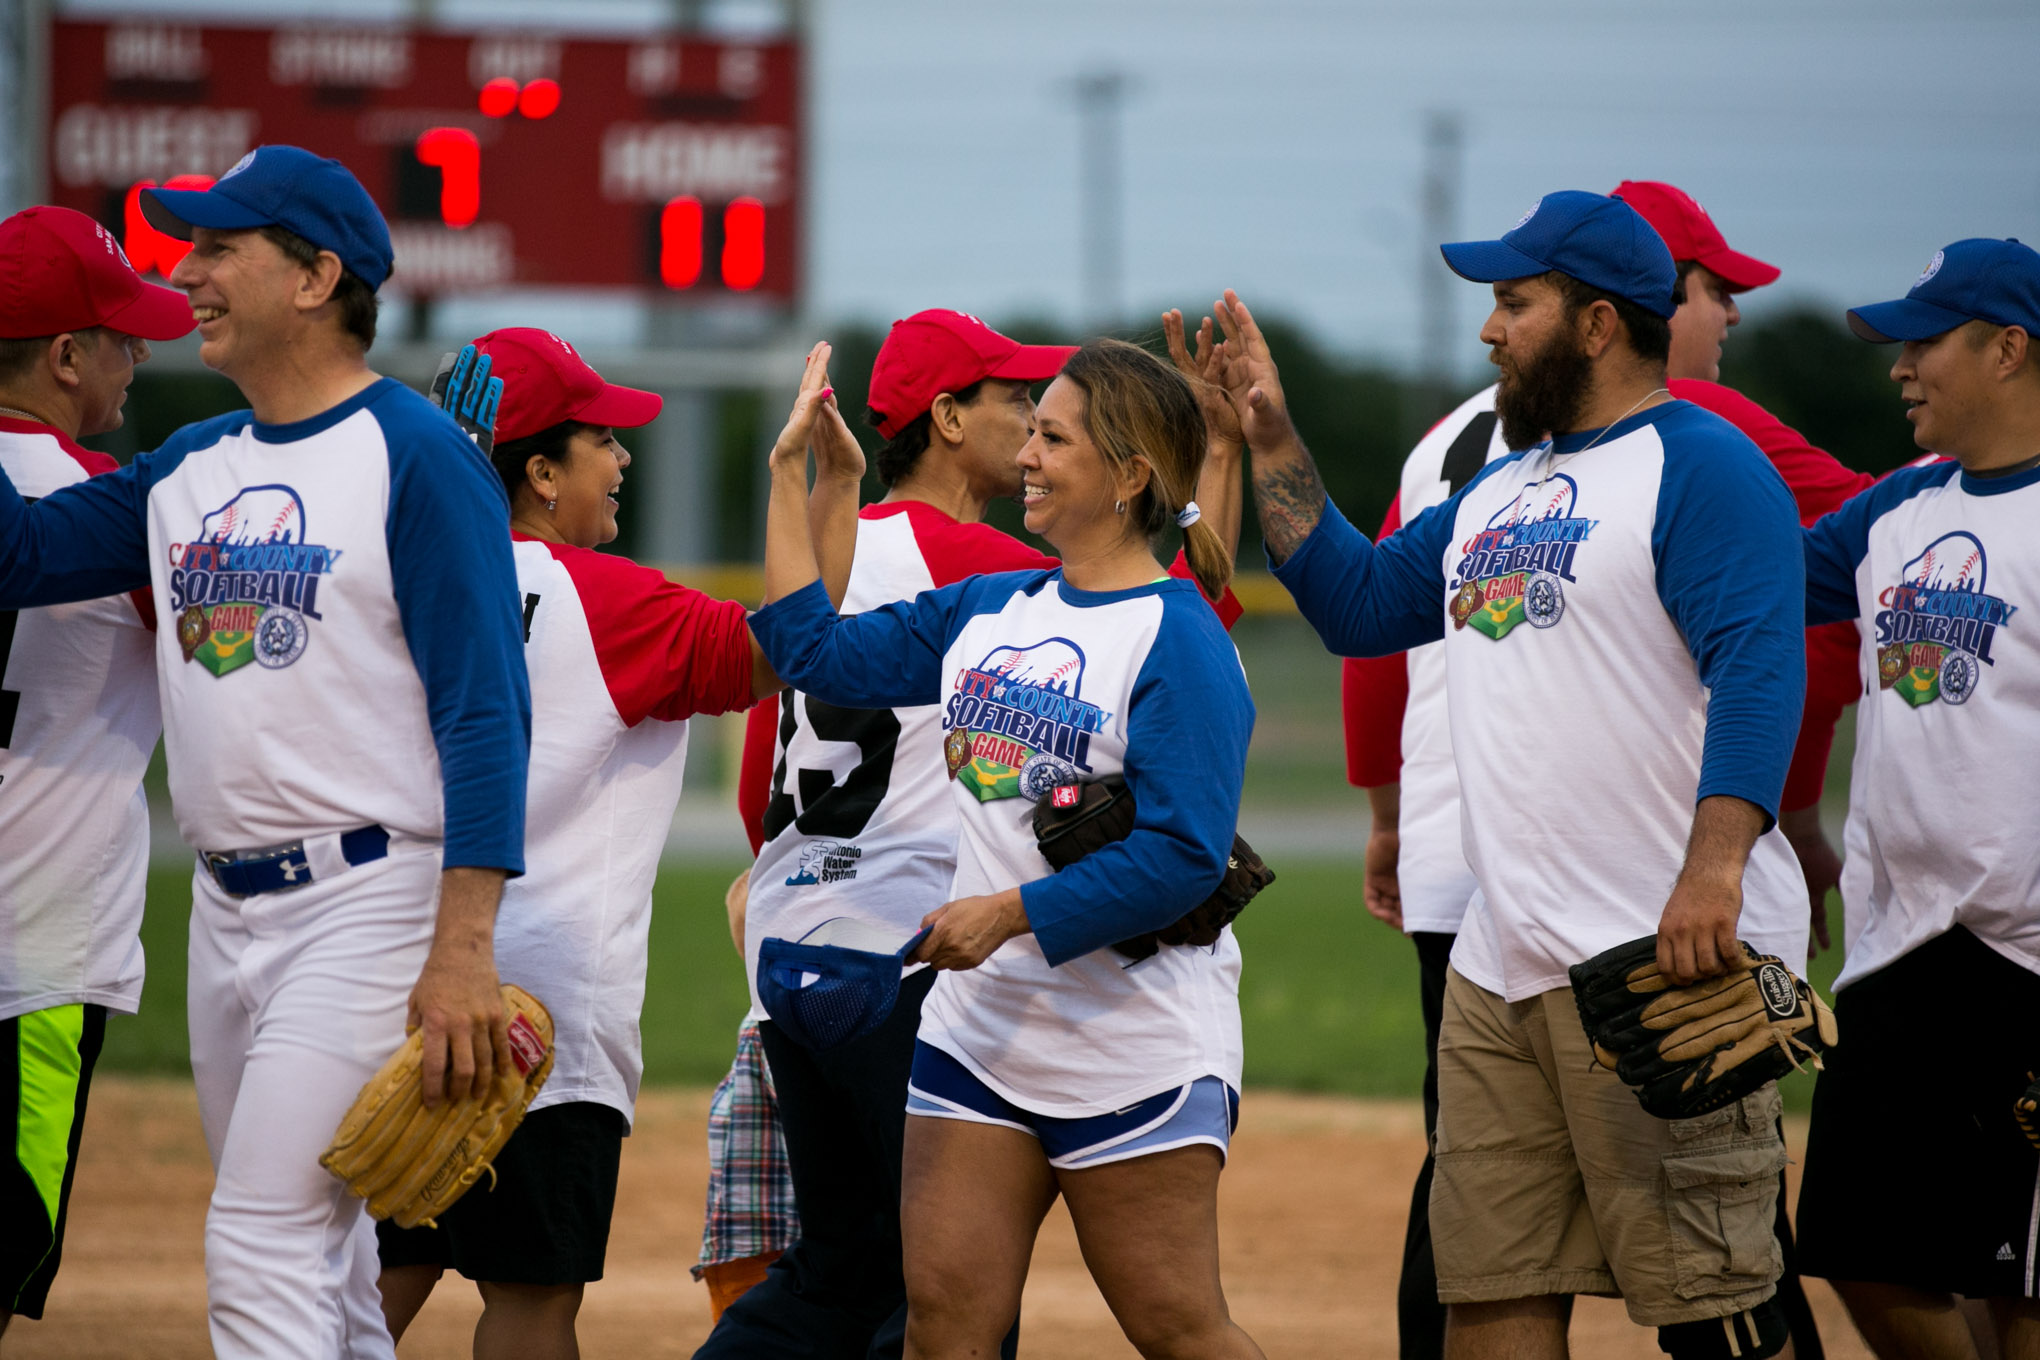 Big Bad Bexars and City Hall of Famers high five after the game. Photo by Kathryn Boyd-Batstone